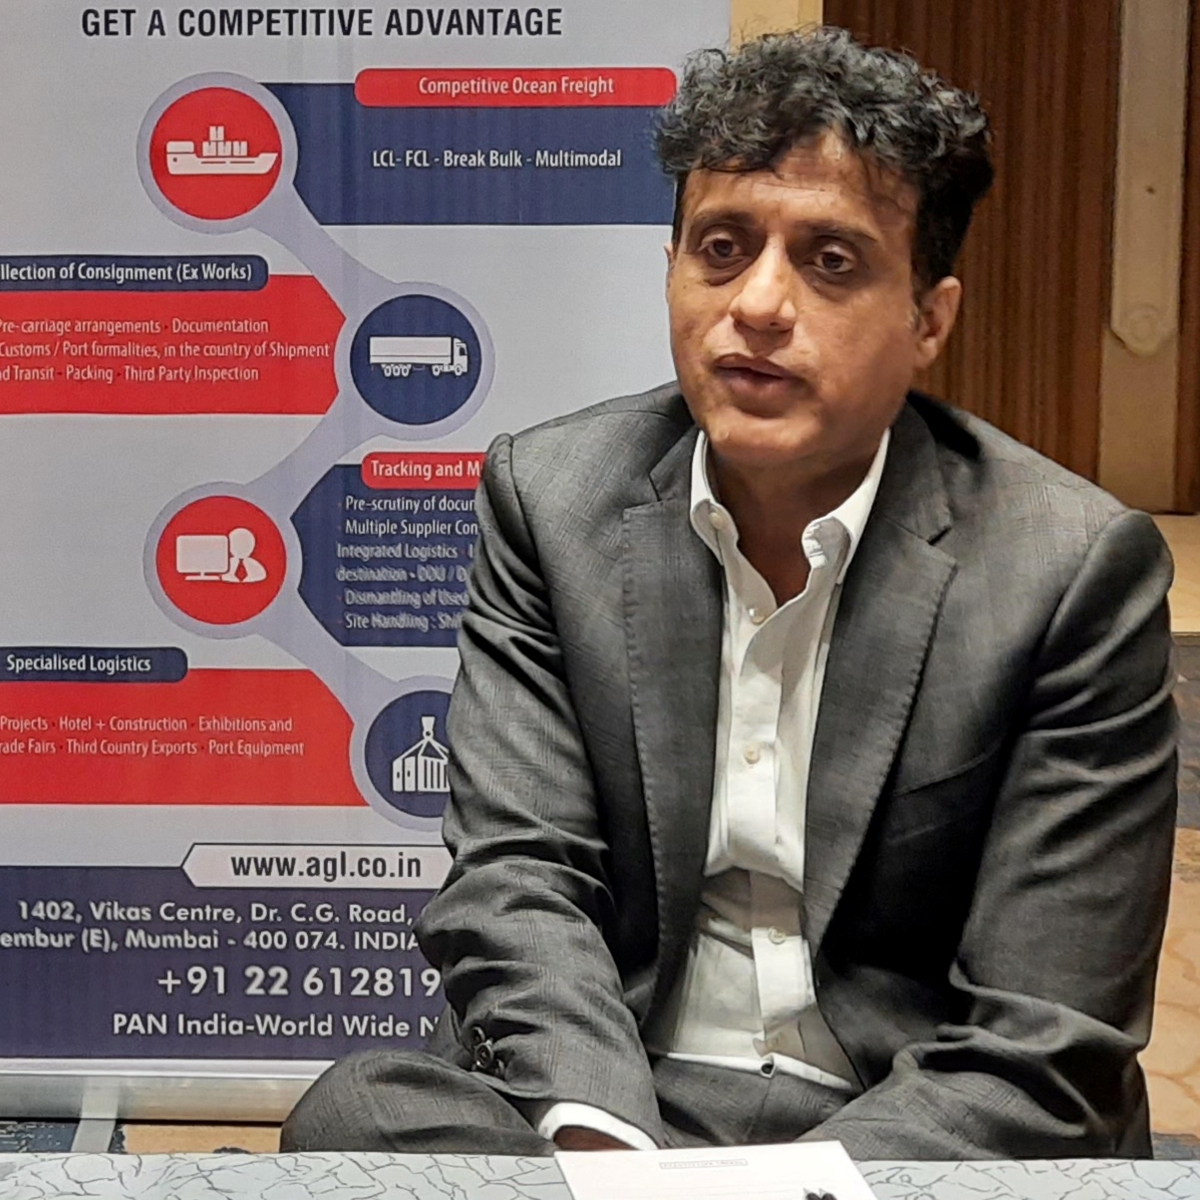 Indore is an important market, its connectivity is vital: JNPT chairman Sanjay Sethi